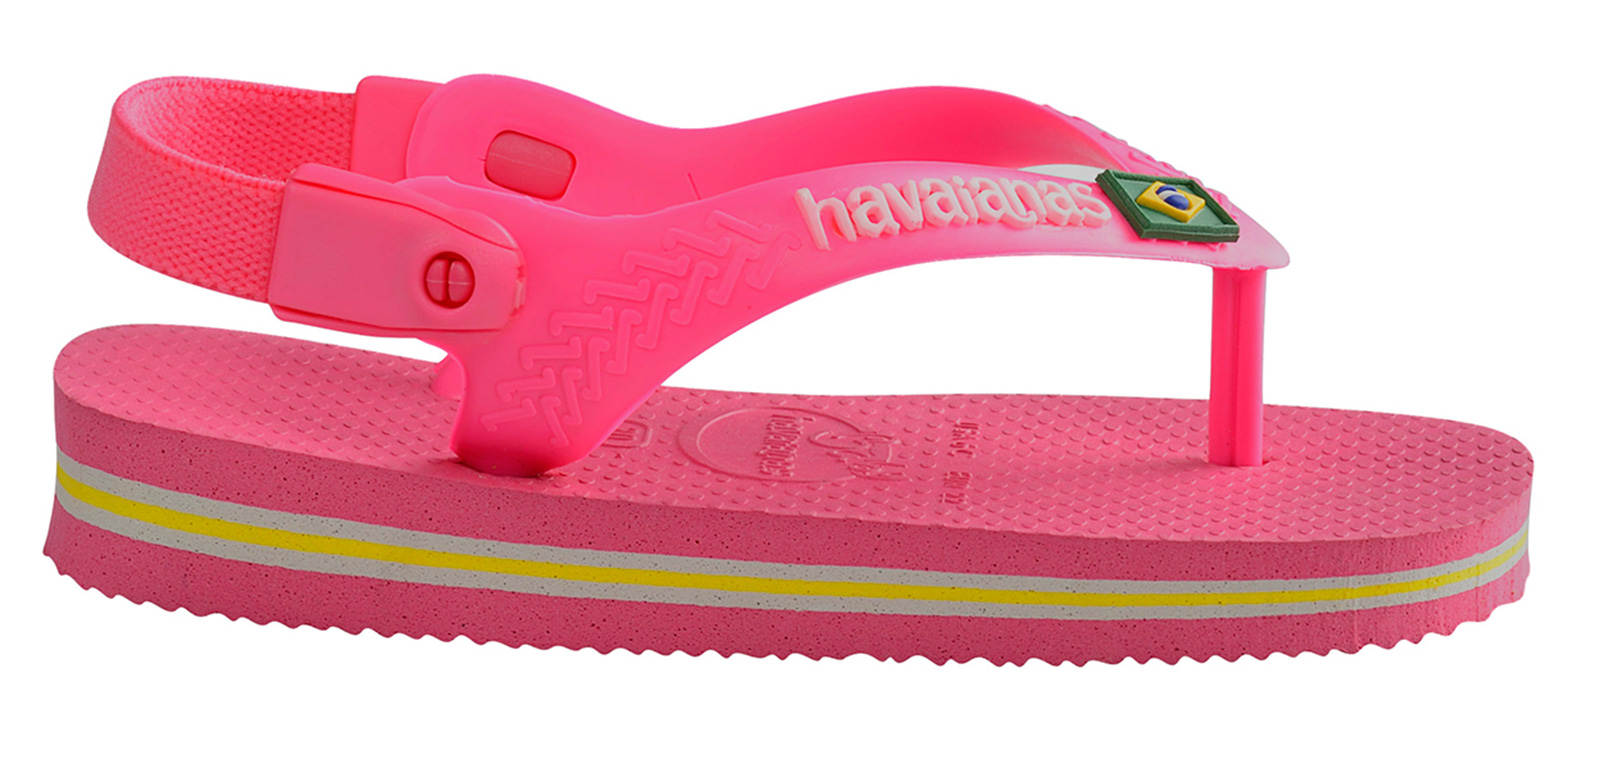 tongs sandales havaianas roses pour b b baby brasil logo shocking pink. Black Bedroom Furniture Sets. Home Design Ideas